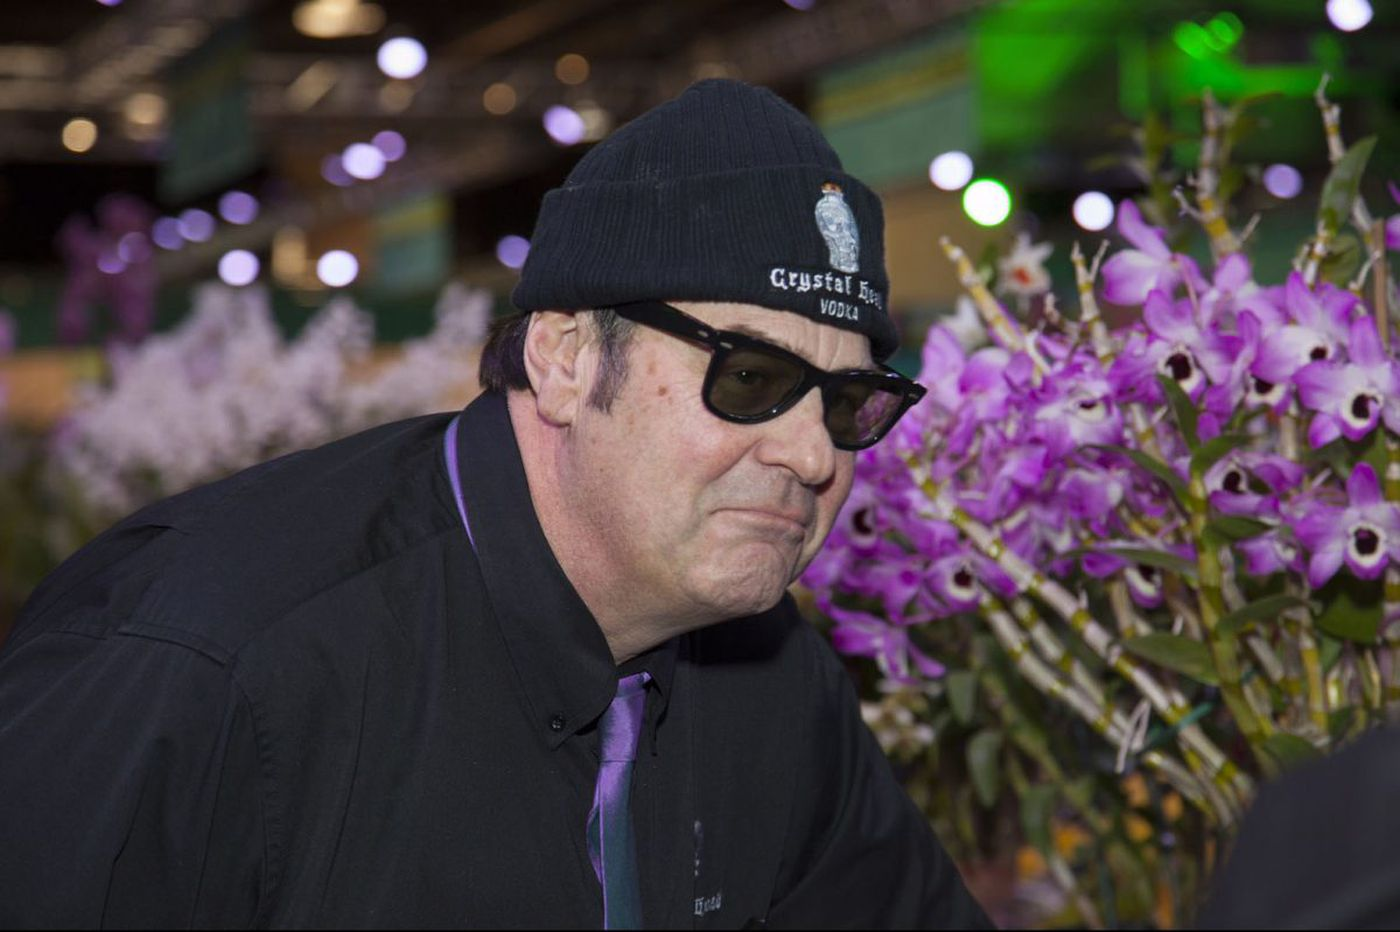 Dan Aykroyd is coming to Philly to autograph bottles of his vodka